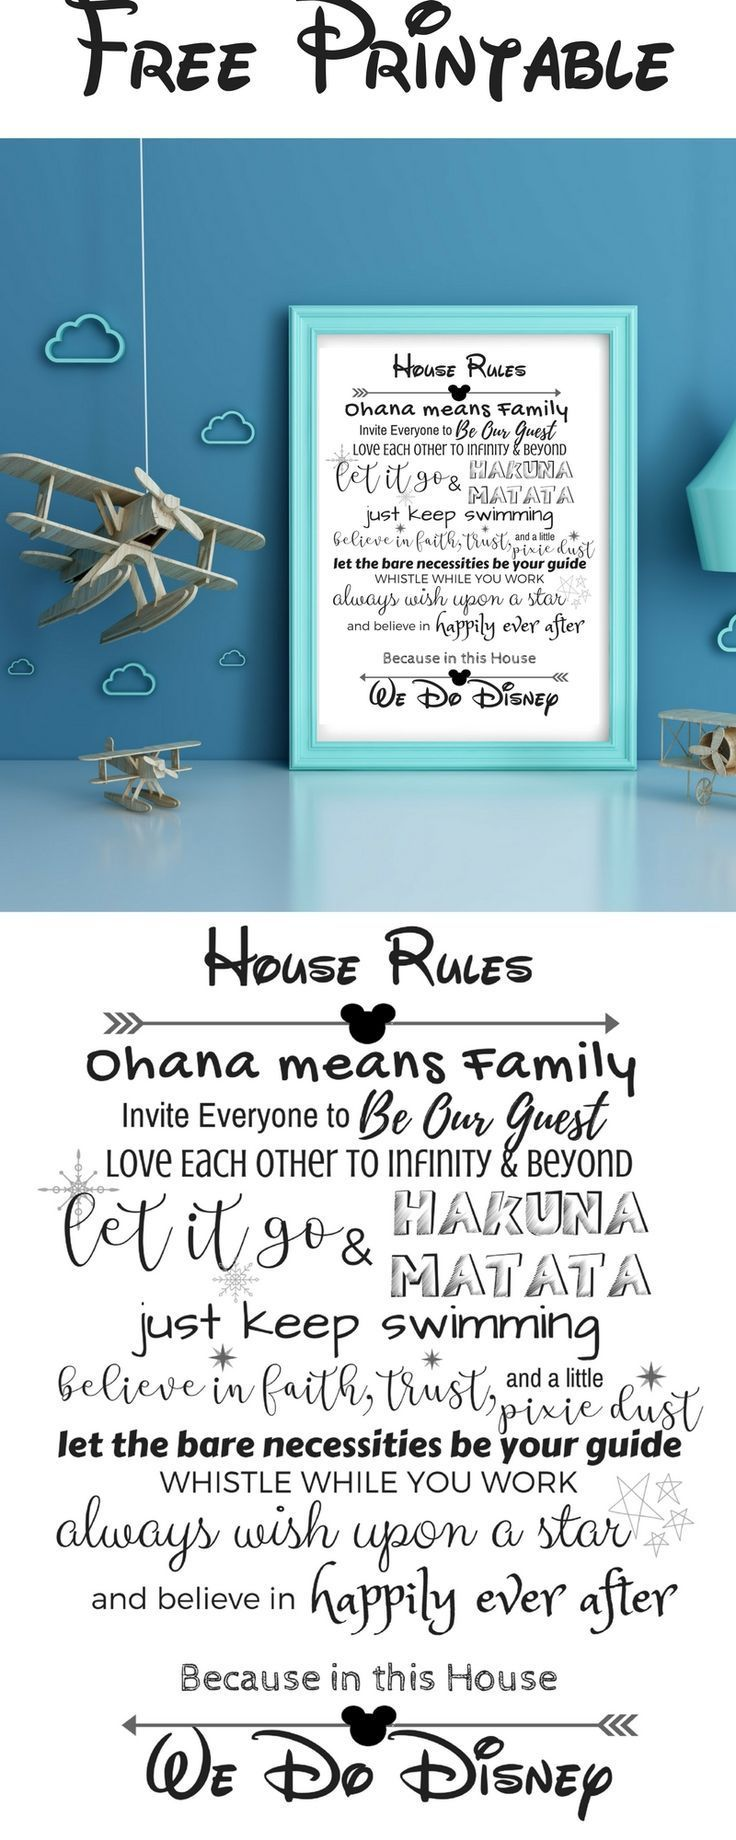 photograph about Free Printables for Home referred to as Disney Space Legislation Cost-free Printable Disney Environment - Absolutely free